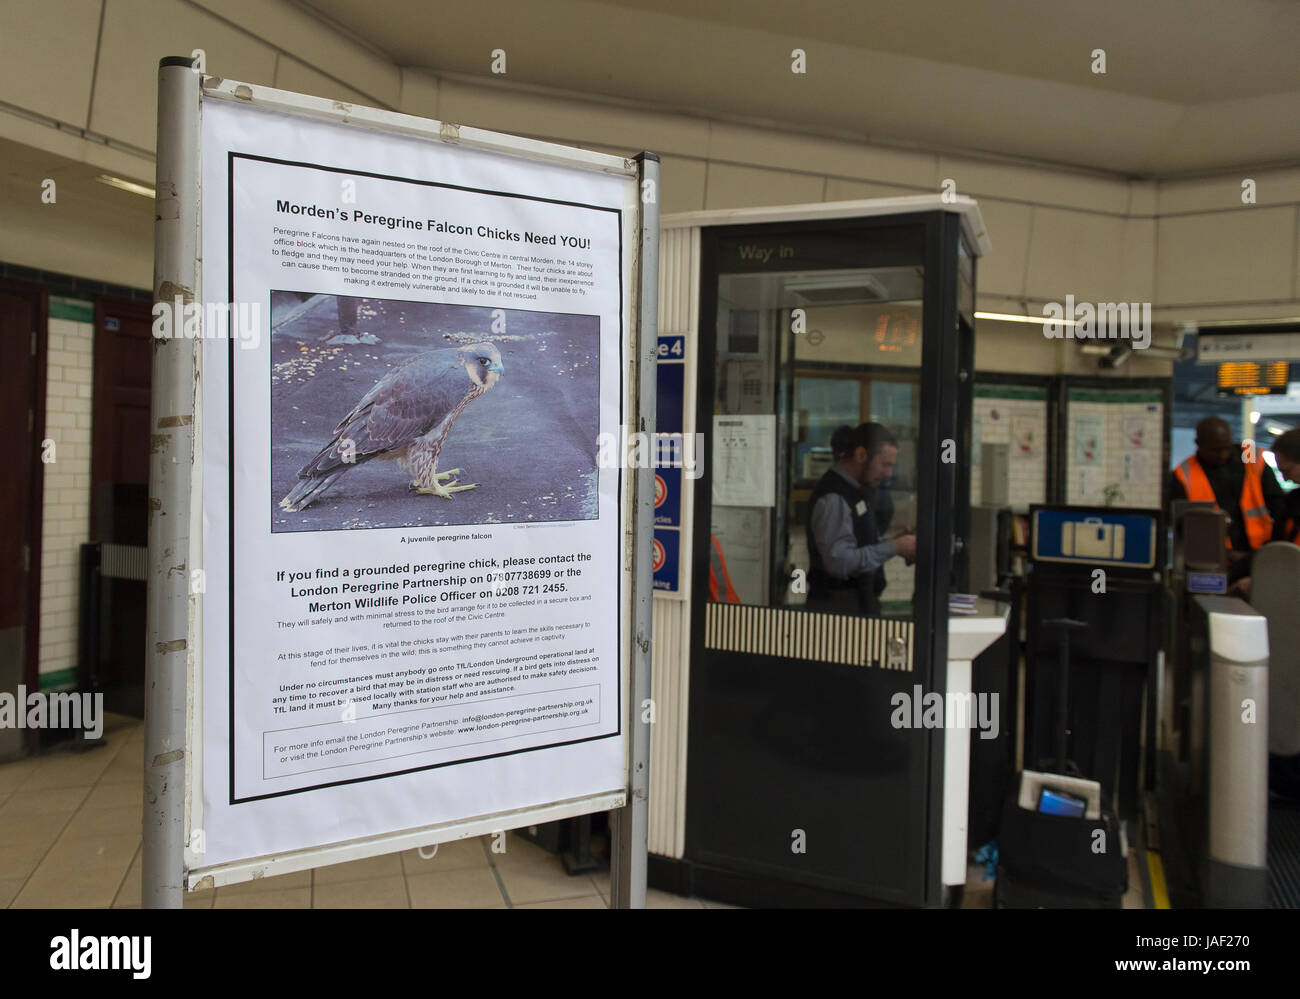 Morden Station, London UK. 6th June 2017. Peregrine Falcons regularly nest on the roof of 14 storey Civic Centre - Stock Image